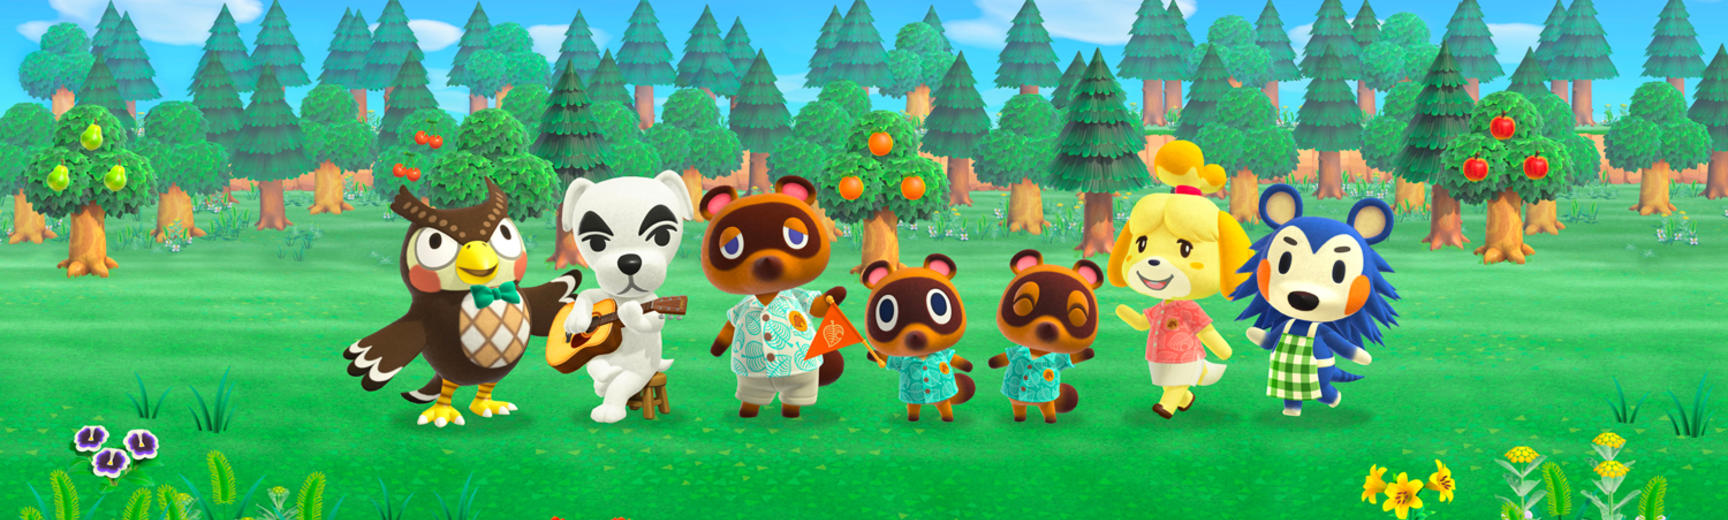 Animal Crossing Characters